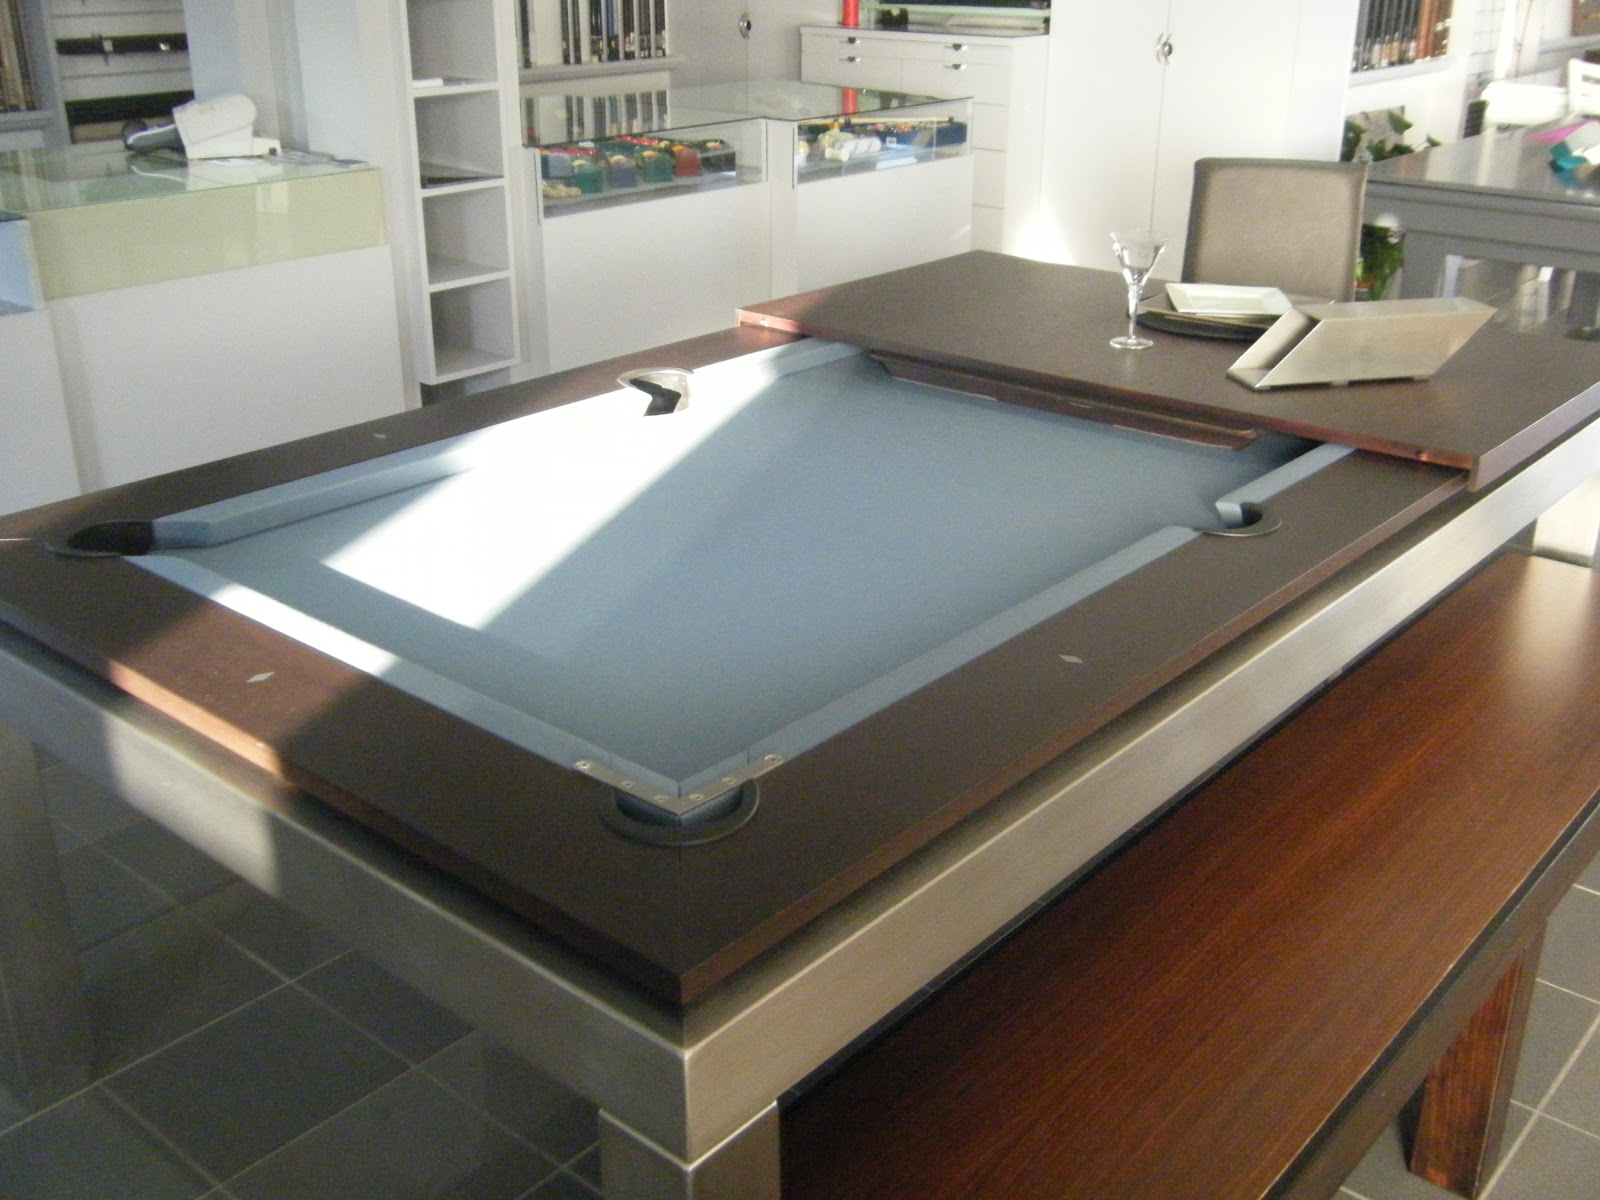 Fabricant de billards juin 2012 - Table de billard transformable en table de salle a manger ...